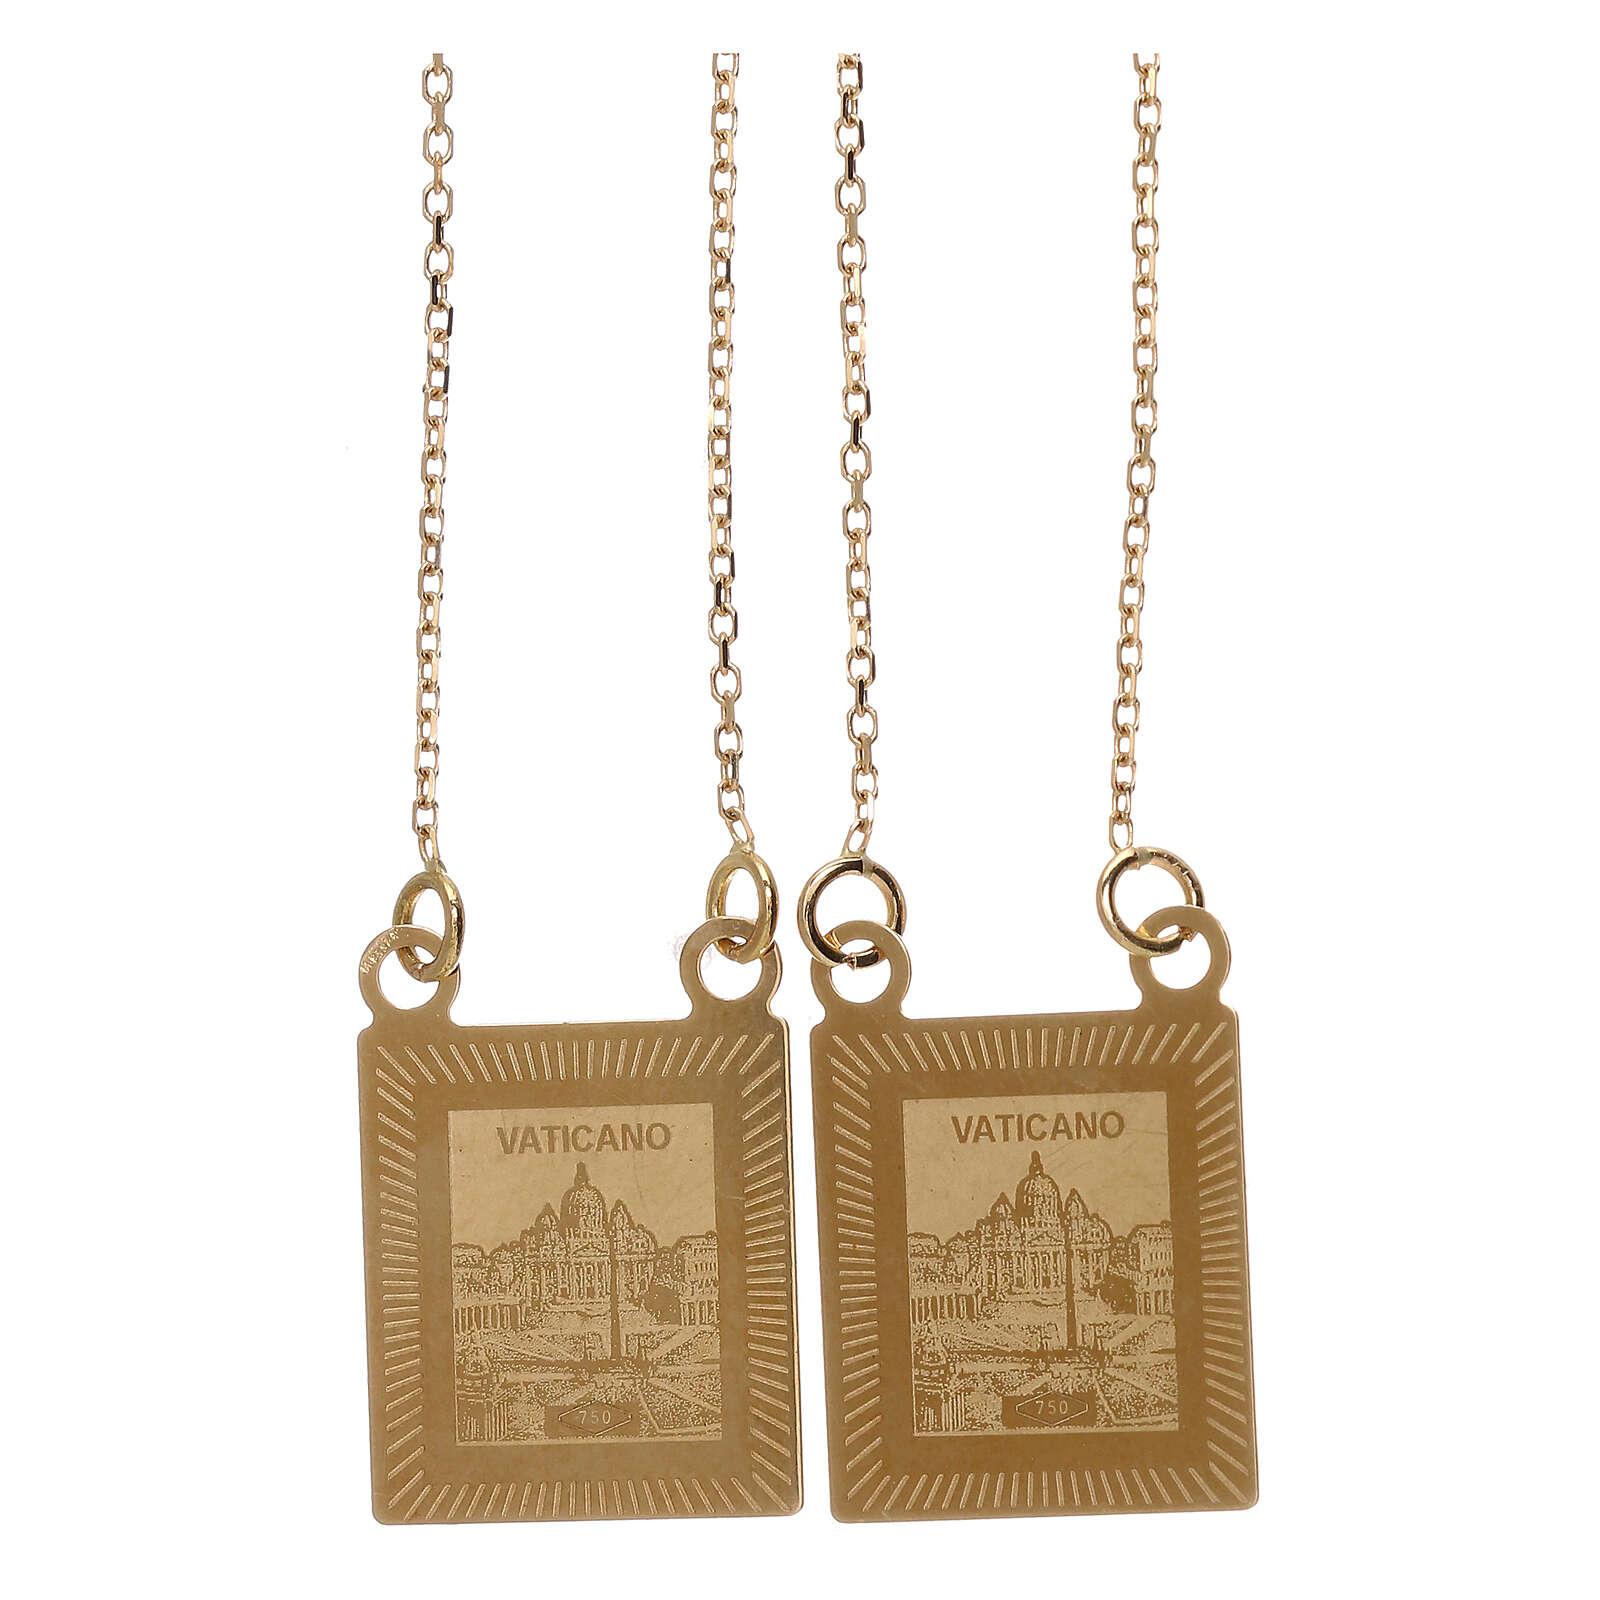 Scapular 750/00 gold color images 27 1/2 in 4.5 gr 4